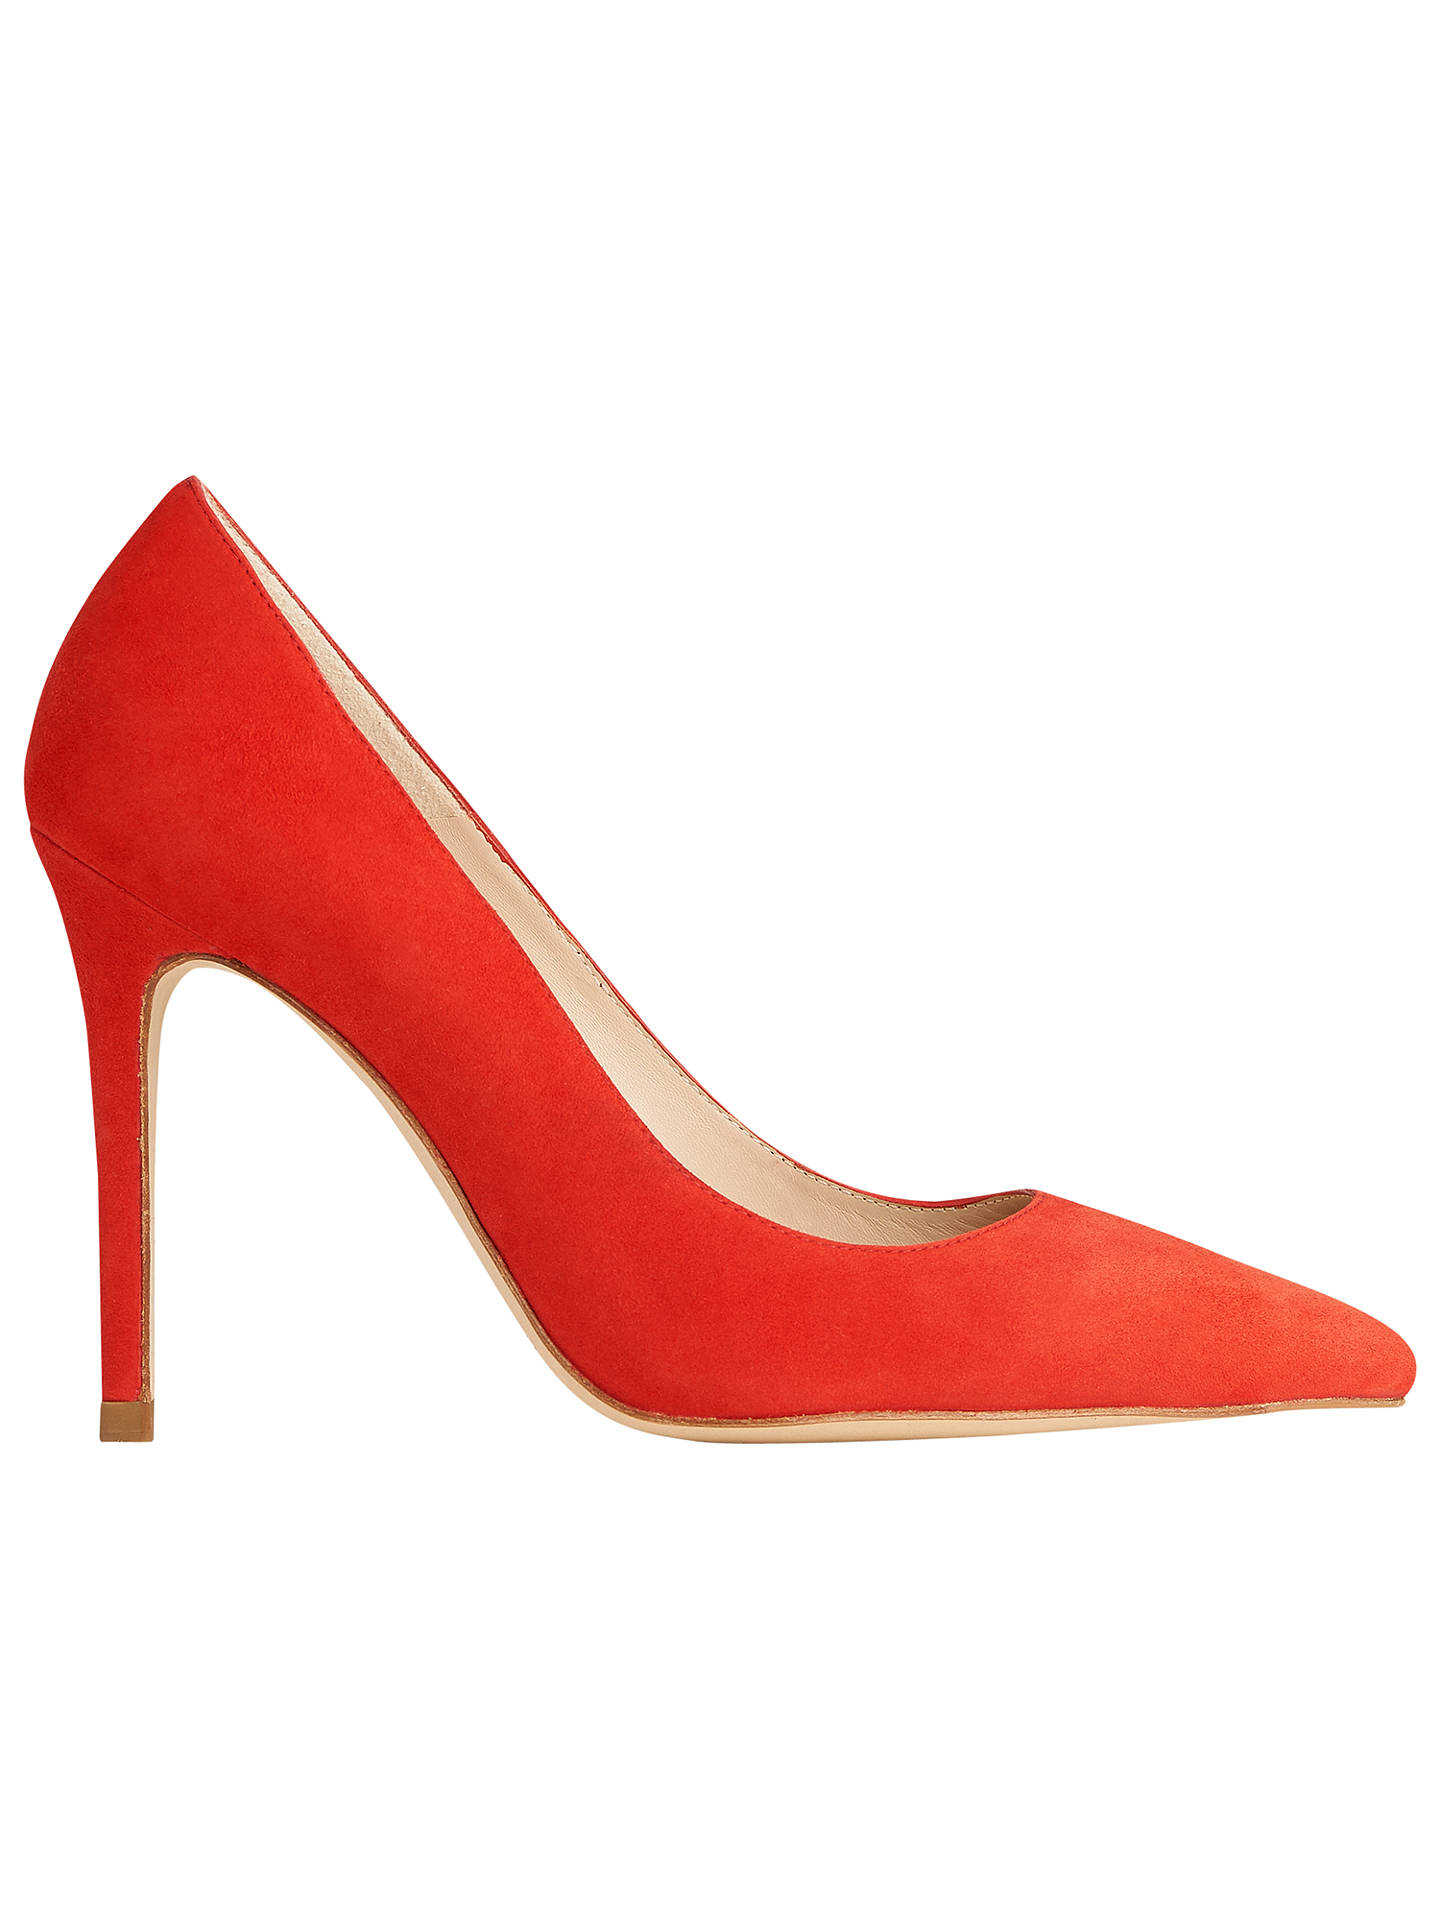 BuyL.K. Bennett Fern Point Toe Leather Court Shoes, Cardinal Red Suede, 2 Online at johnlewis.com